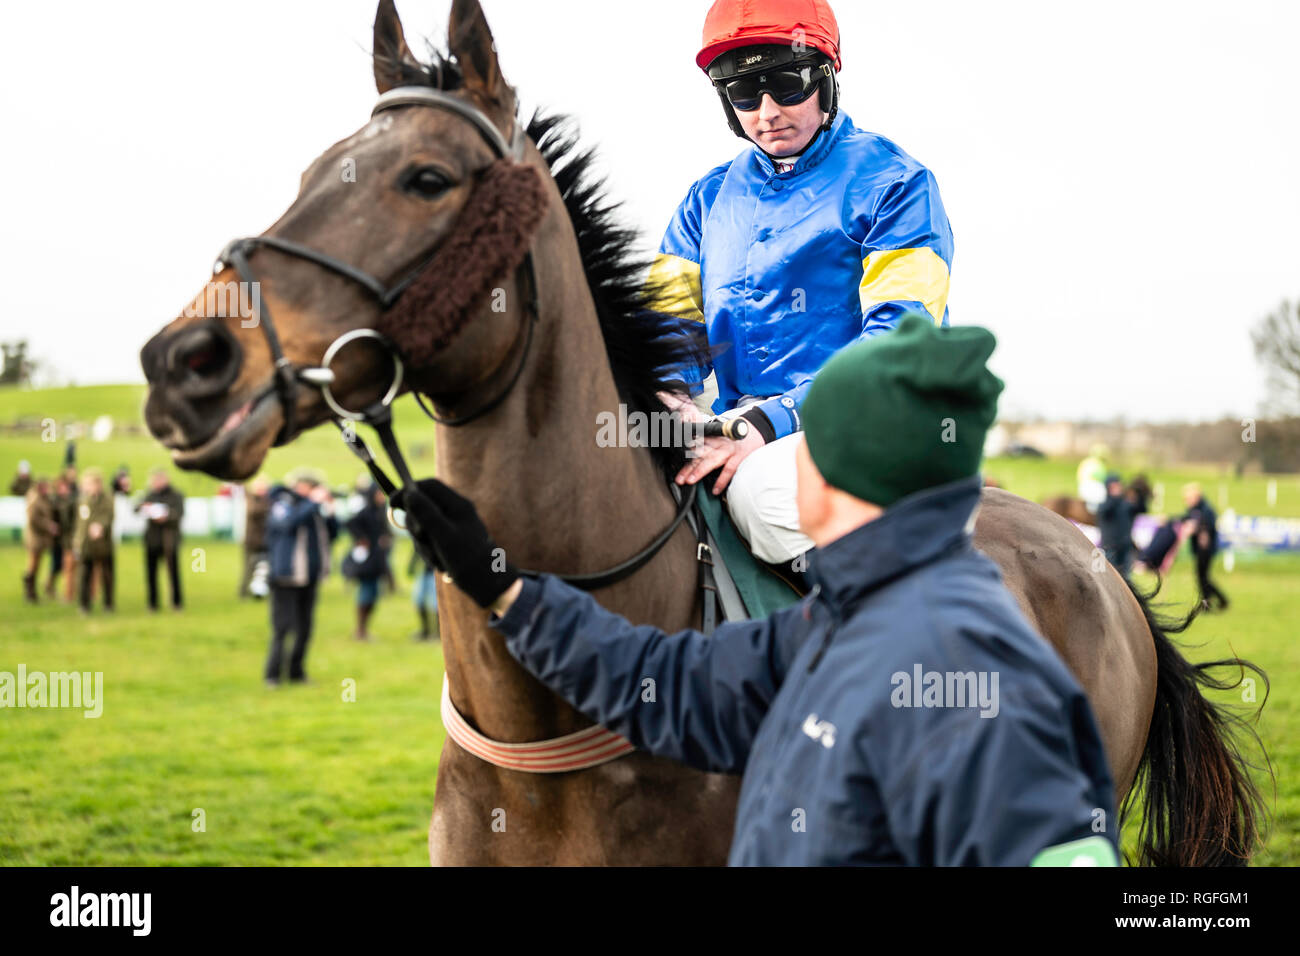 Friars Haugh, Kelso, Scottish Borders, UK. 27th January 2019. The Jedforest point to point race meeting is the first of the season in Scotland. To com Stock Photo